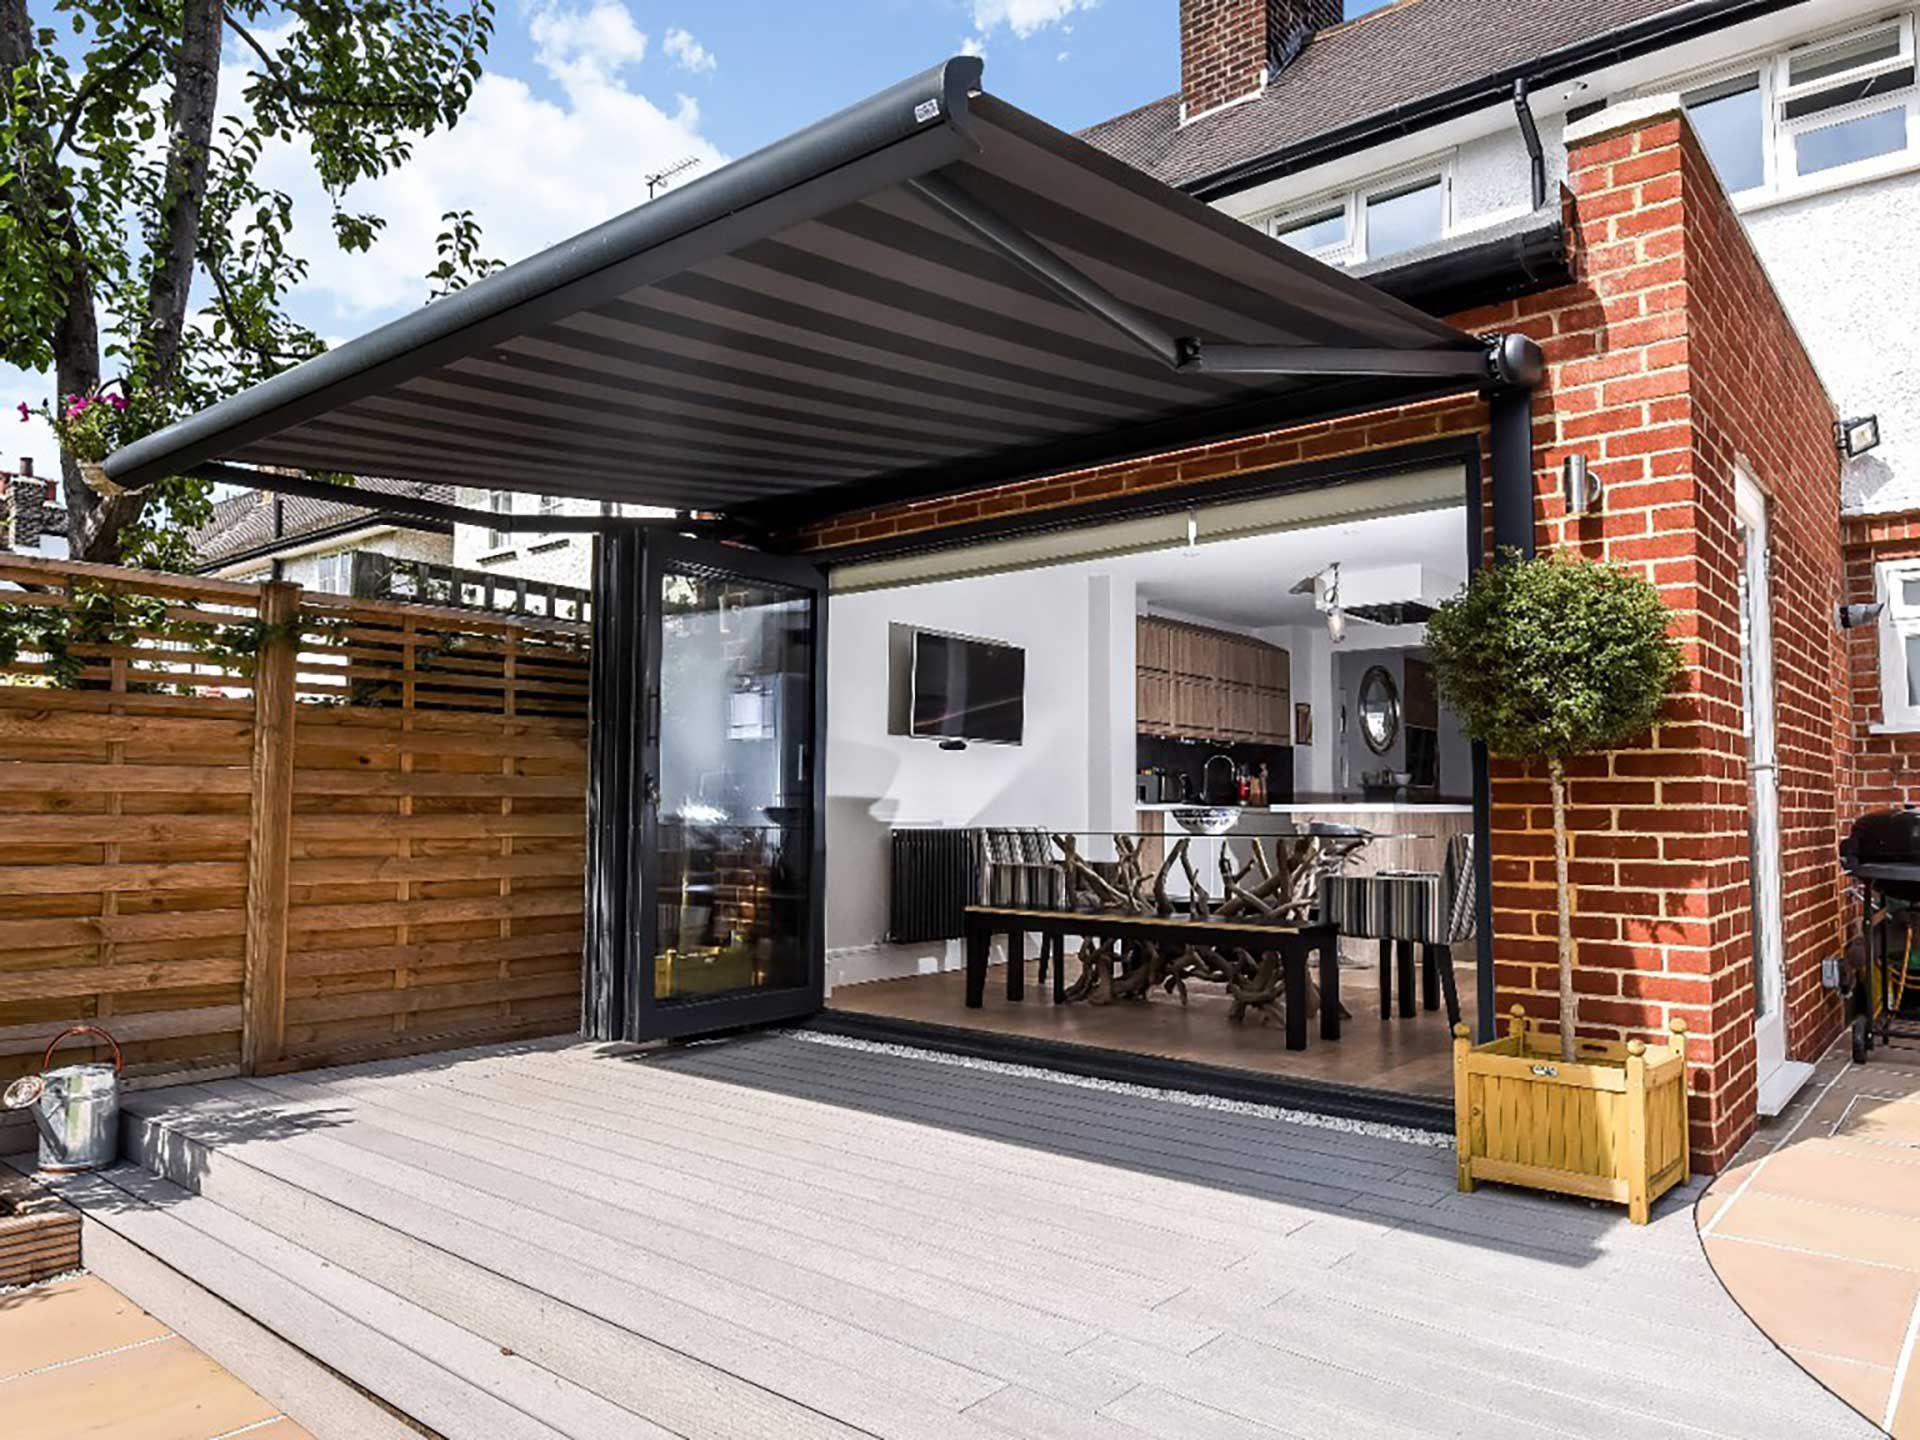 Garage Awning Extension Back Extension Patio Awning Decking Back Garden Corepro